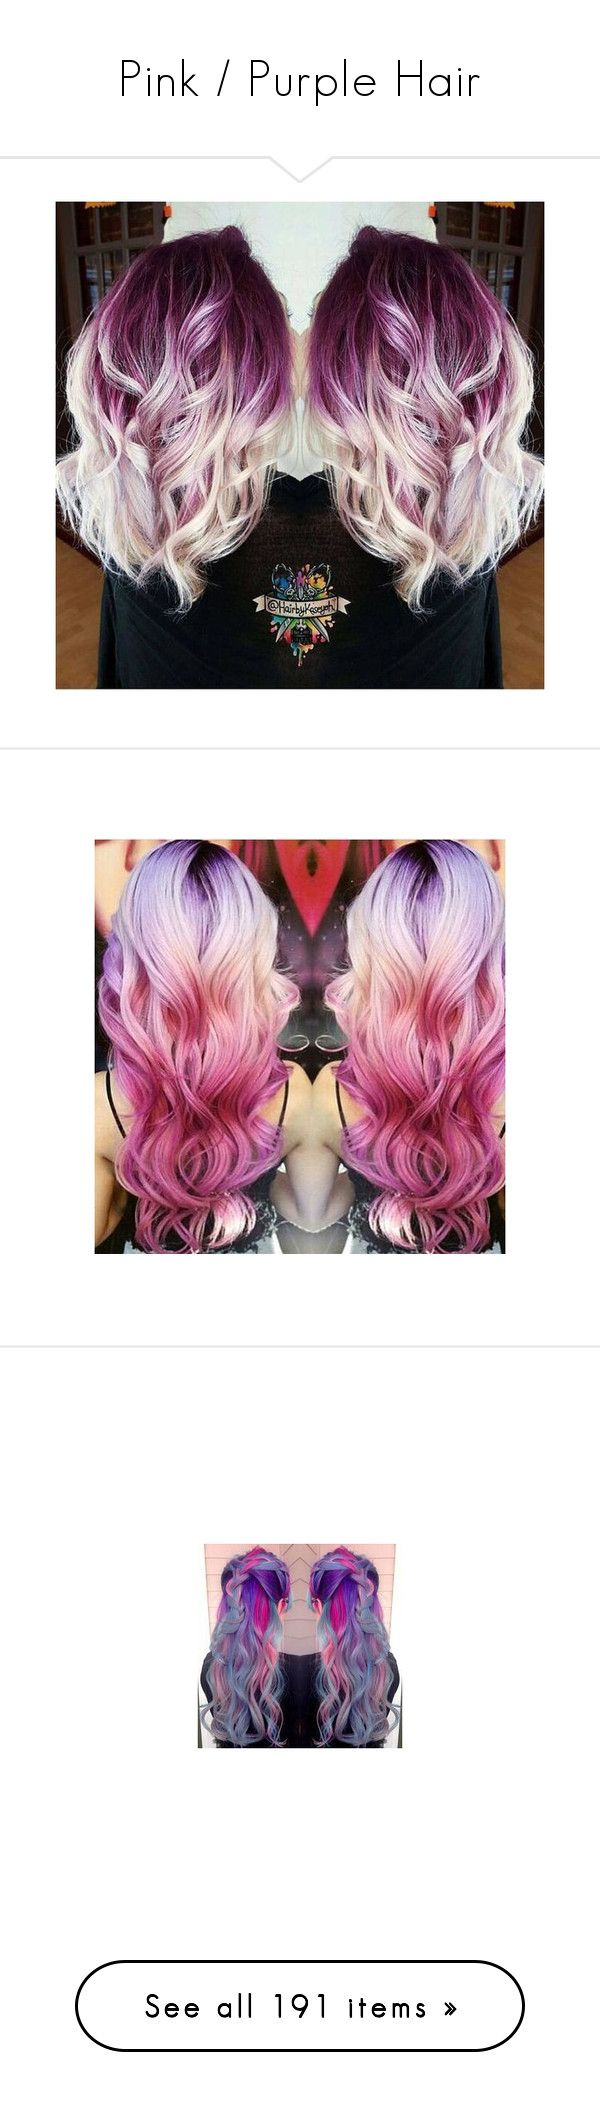 """""""Pink / Purple Hair"""" by mildabas ❤ liked on Polyvore featuring beauty products, haircare, hair, hair color, people, backgrounds, models, photos, filler and accessories"""